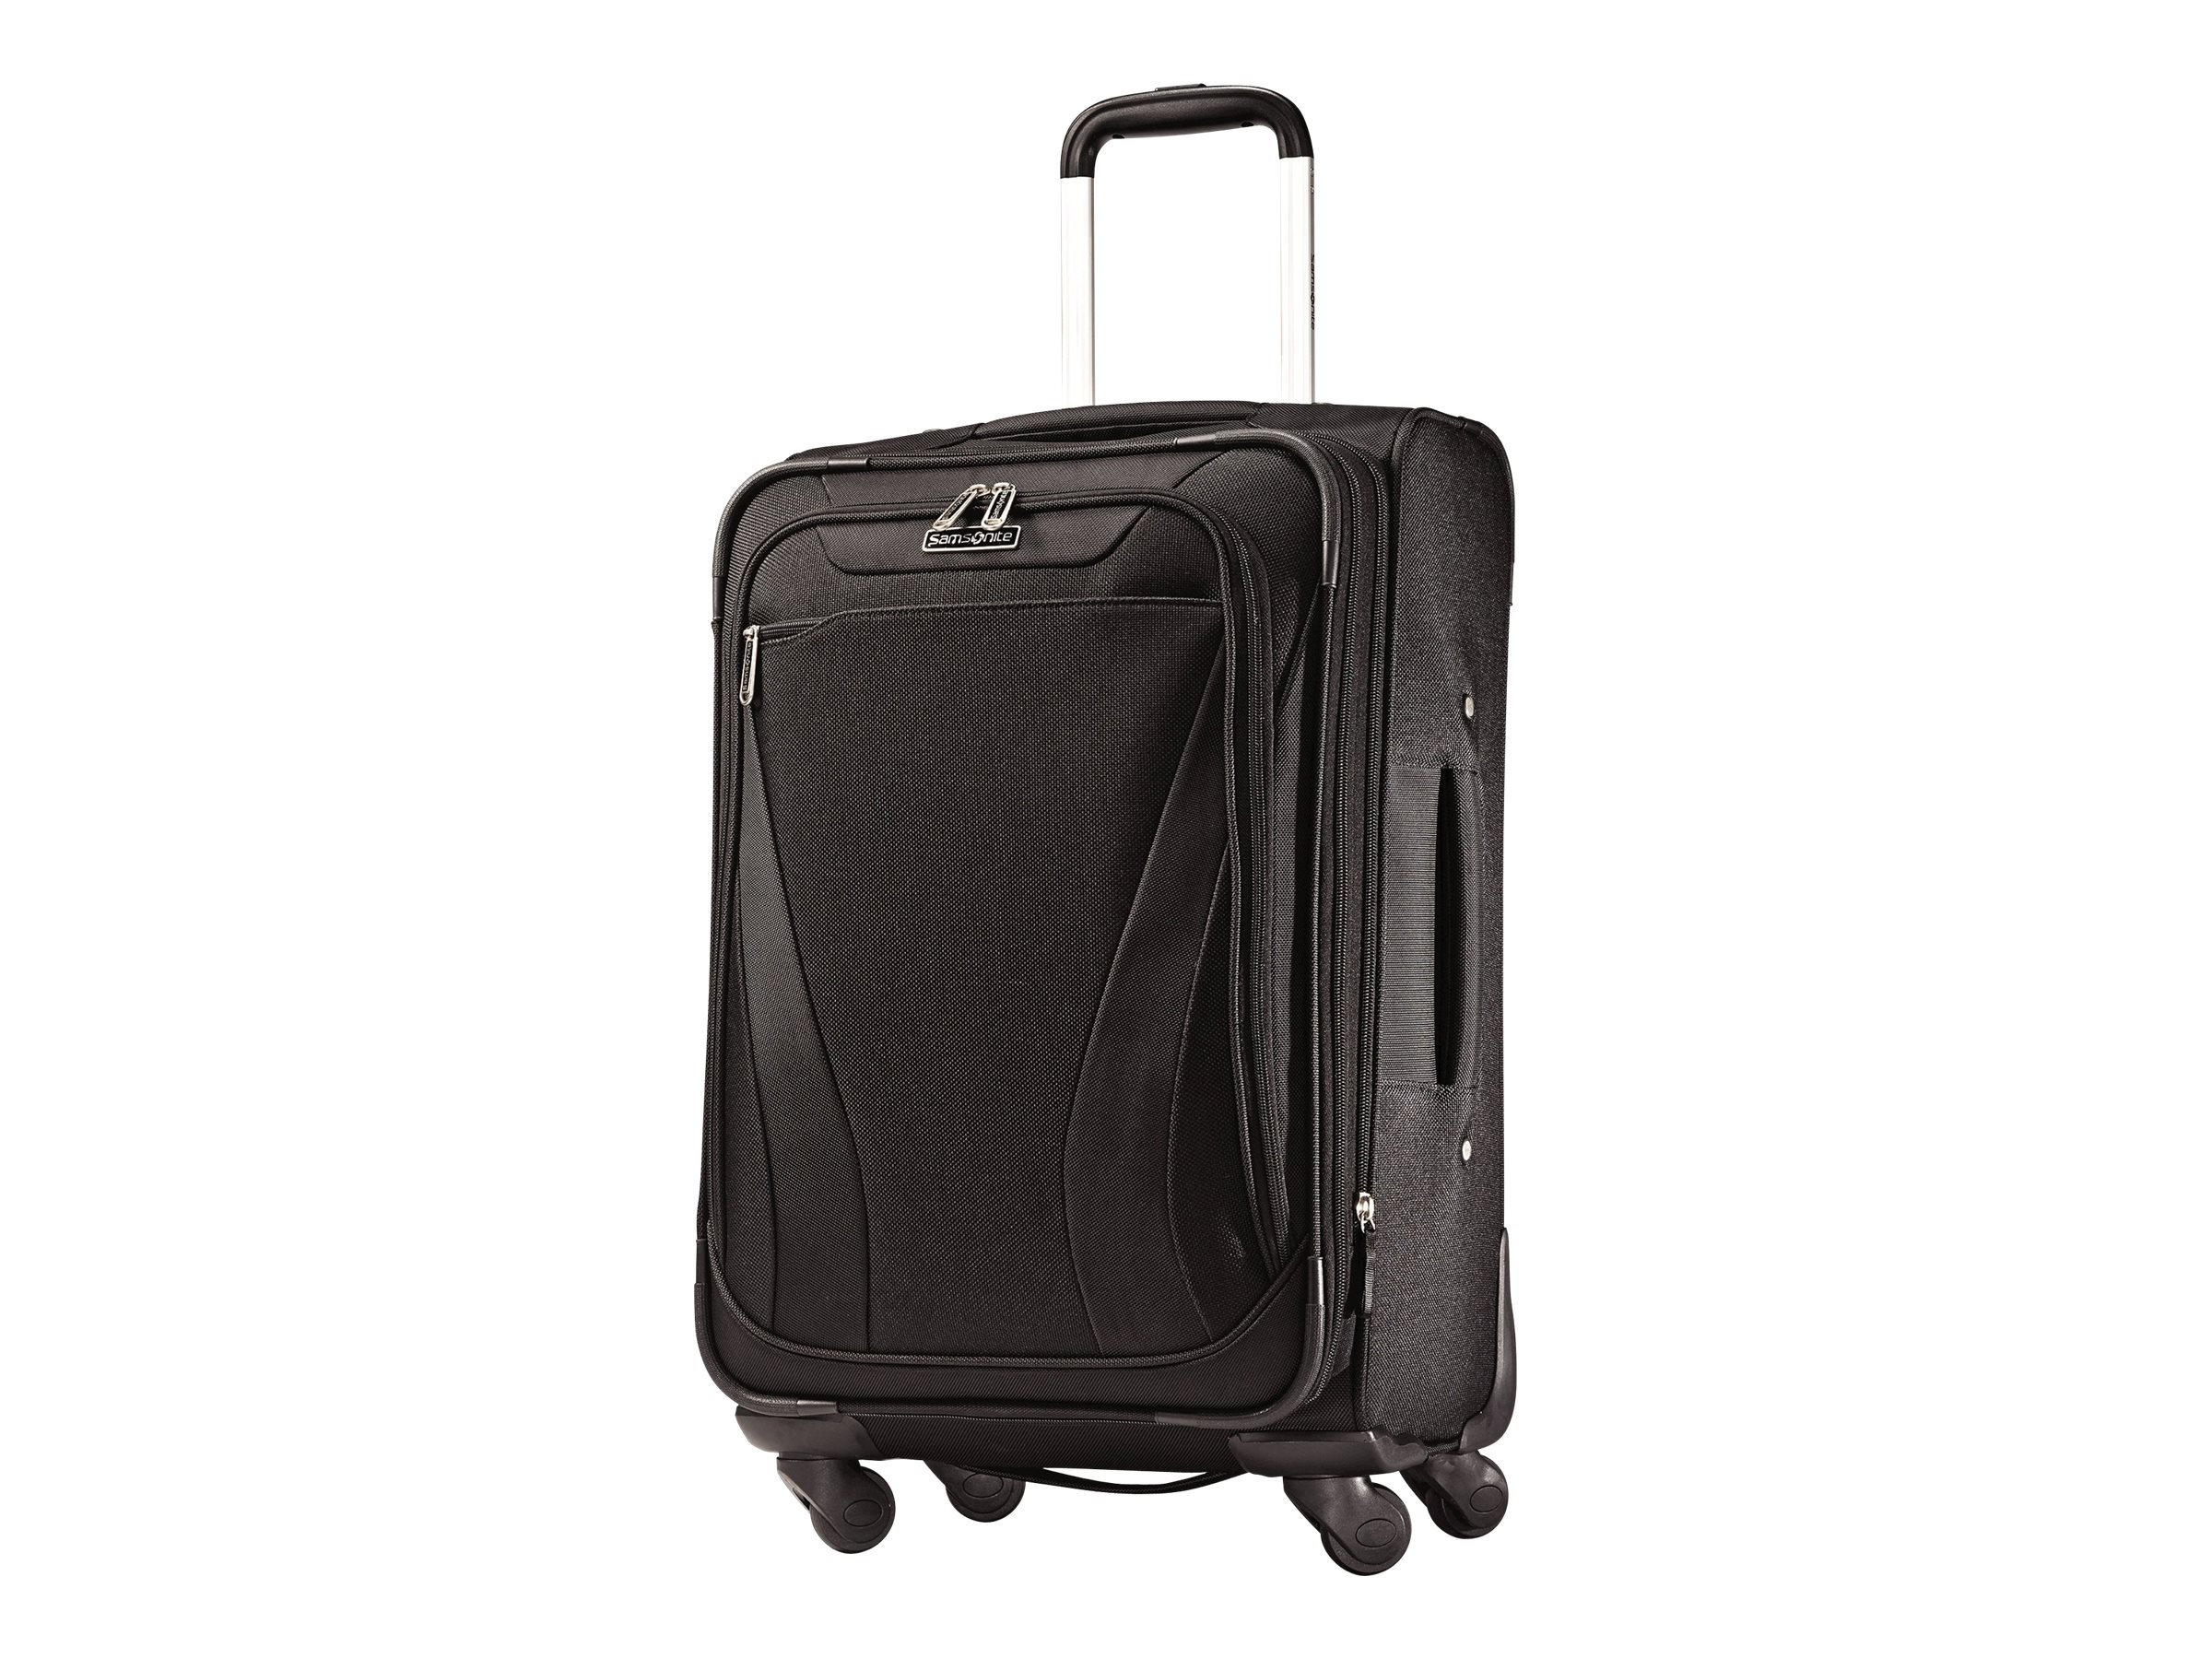 Stephen Gould Samsonite Carry-On Upright Luggage w  (2) Oversized Wheels, 58935-1041, 17703992, Carrying Cases - Other